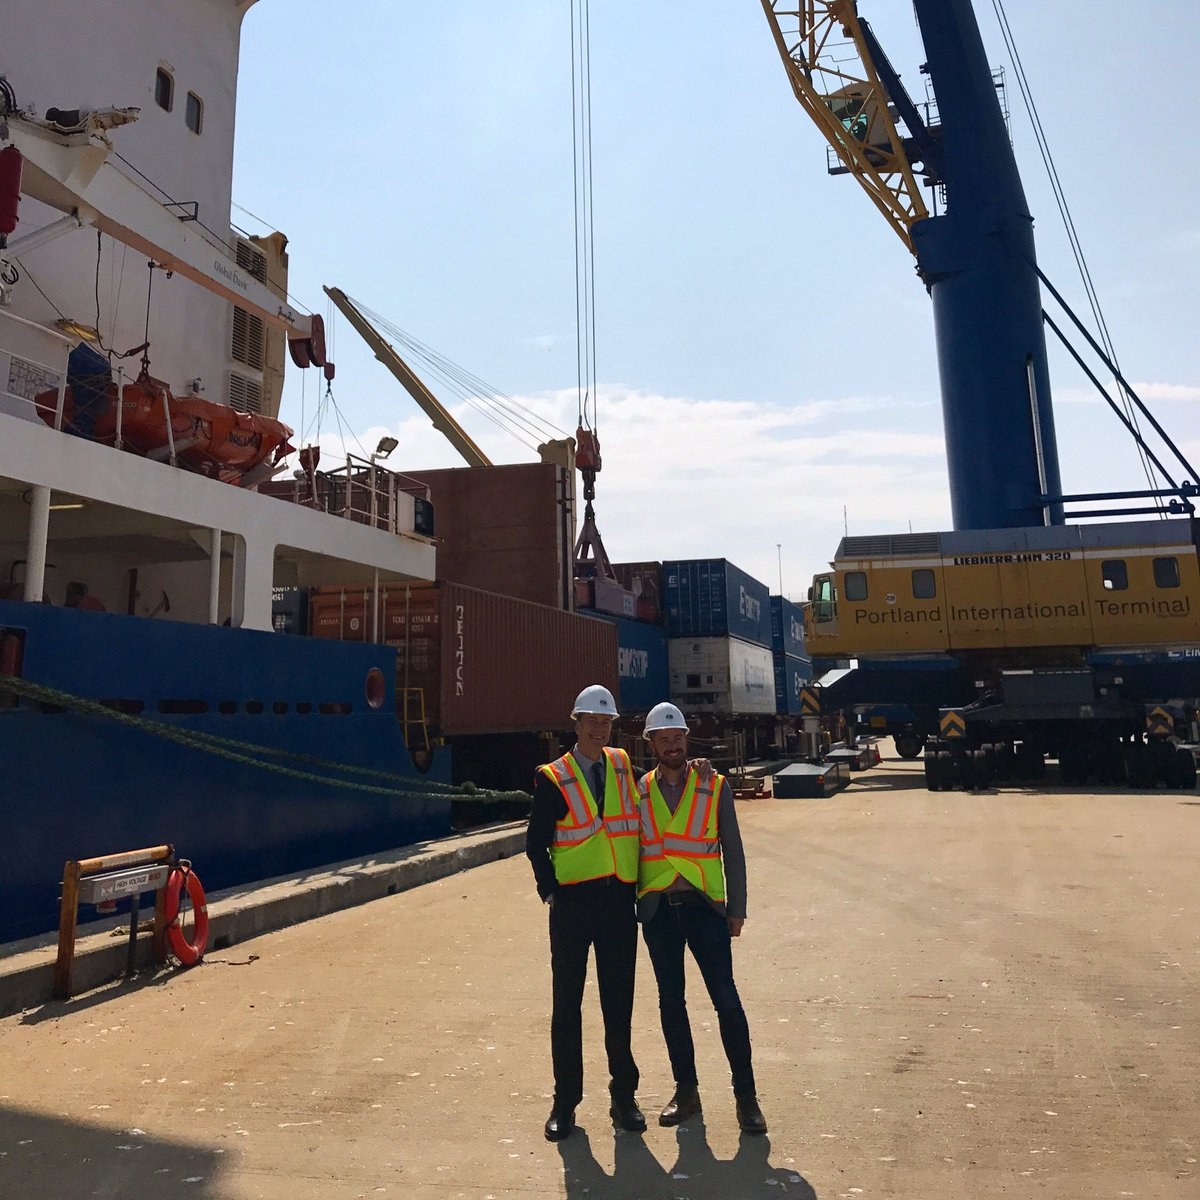 Thanks to Patrick Arnold, CEO of the New England Ocean Cluster &amp; a good friend to #UNE, for showing me around. @NEOceanCluster #Eimskip<br>http://pic.twitter.com/5TLxknG7dz